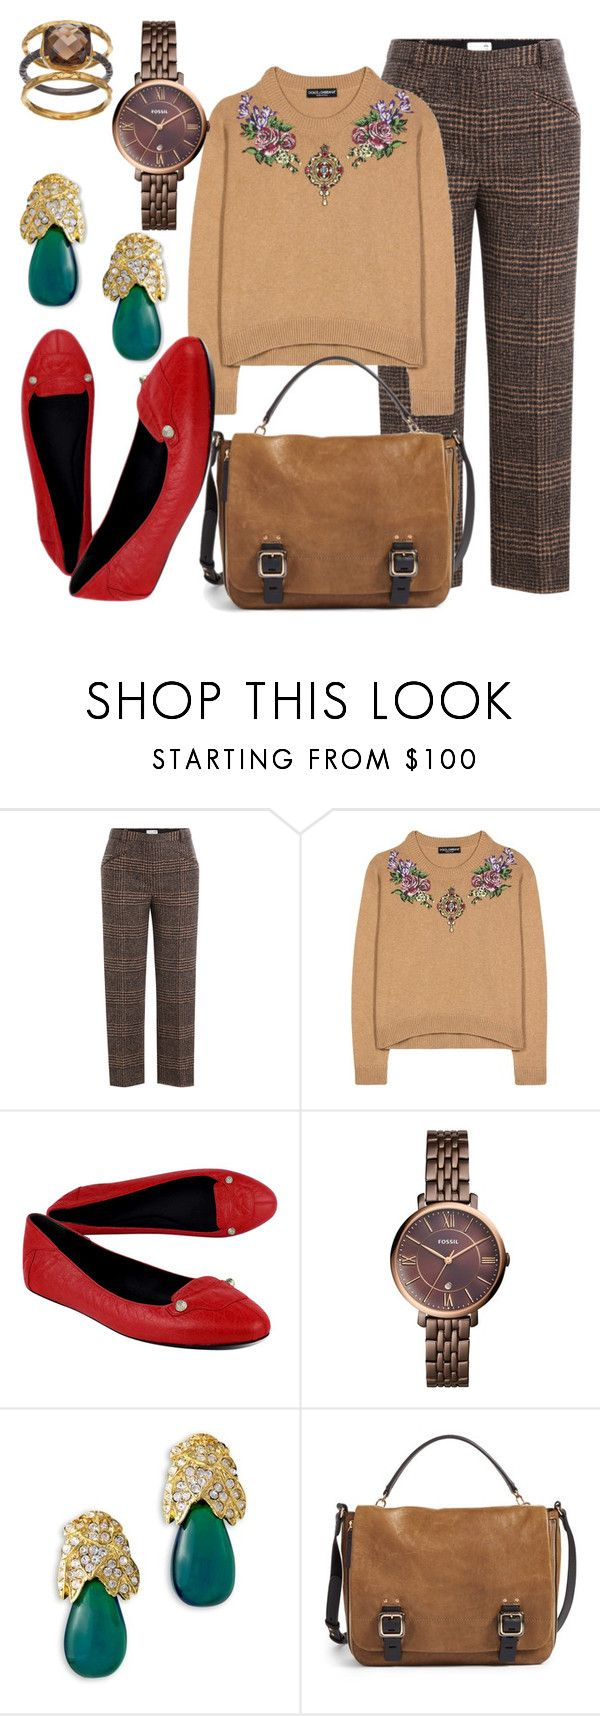 """""""Let's Talk"""" by fashionforwarded ❤ liked on Polyvore featuring Sonia Rykiel, Dolce&Gabbana, Balenciaga, FOSSIL, Kenneth Jay Lane, Vince Camuto, Olive & Ivy and NYFW"""